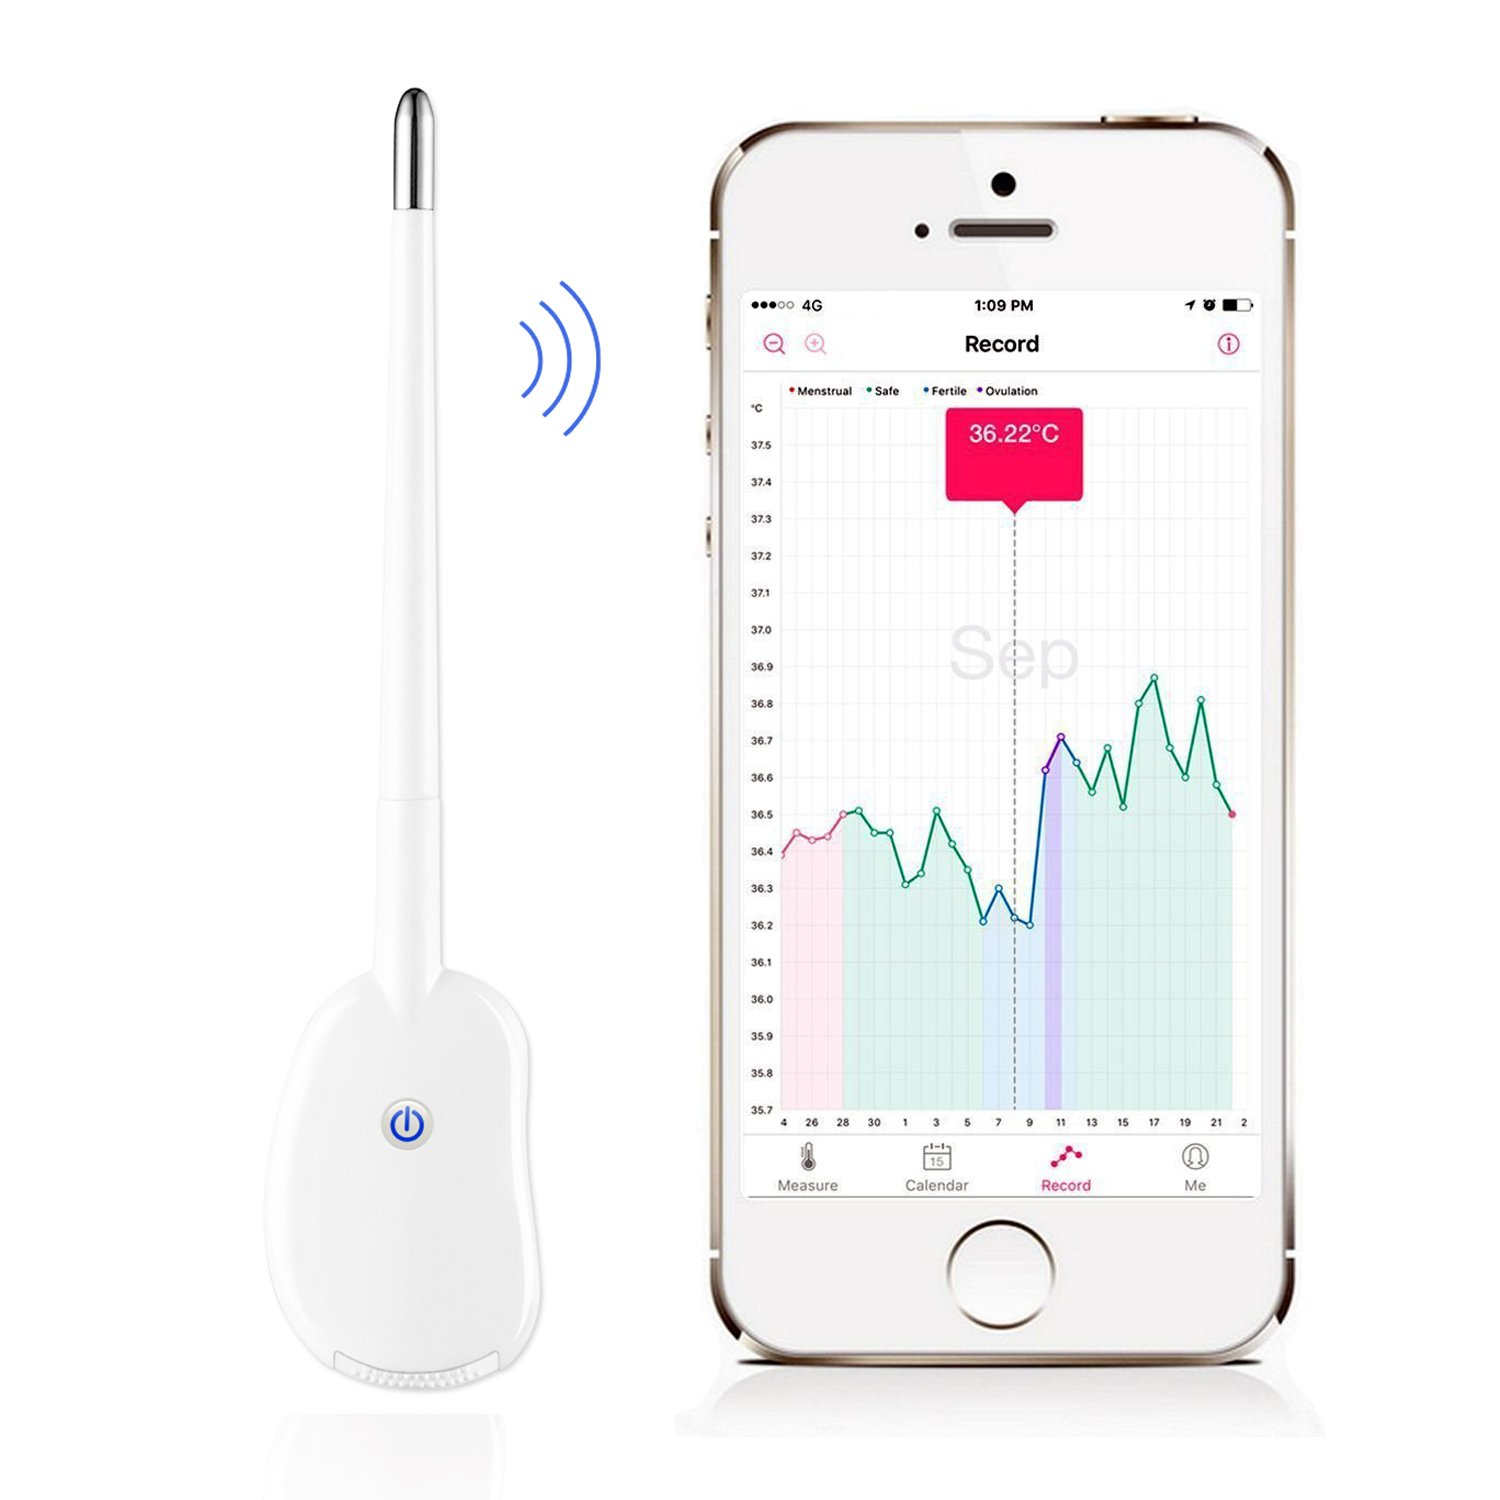 Smart Period Tracker Fertility Monitor, Basal Body Temperature Thermometer (BBT) Accurate Ovulation Prediction, Bluetooth Oral Basal Thermometer for apple and Android